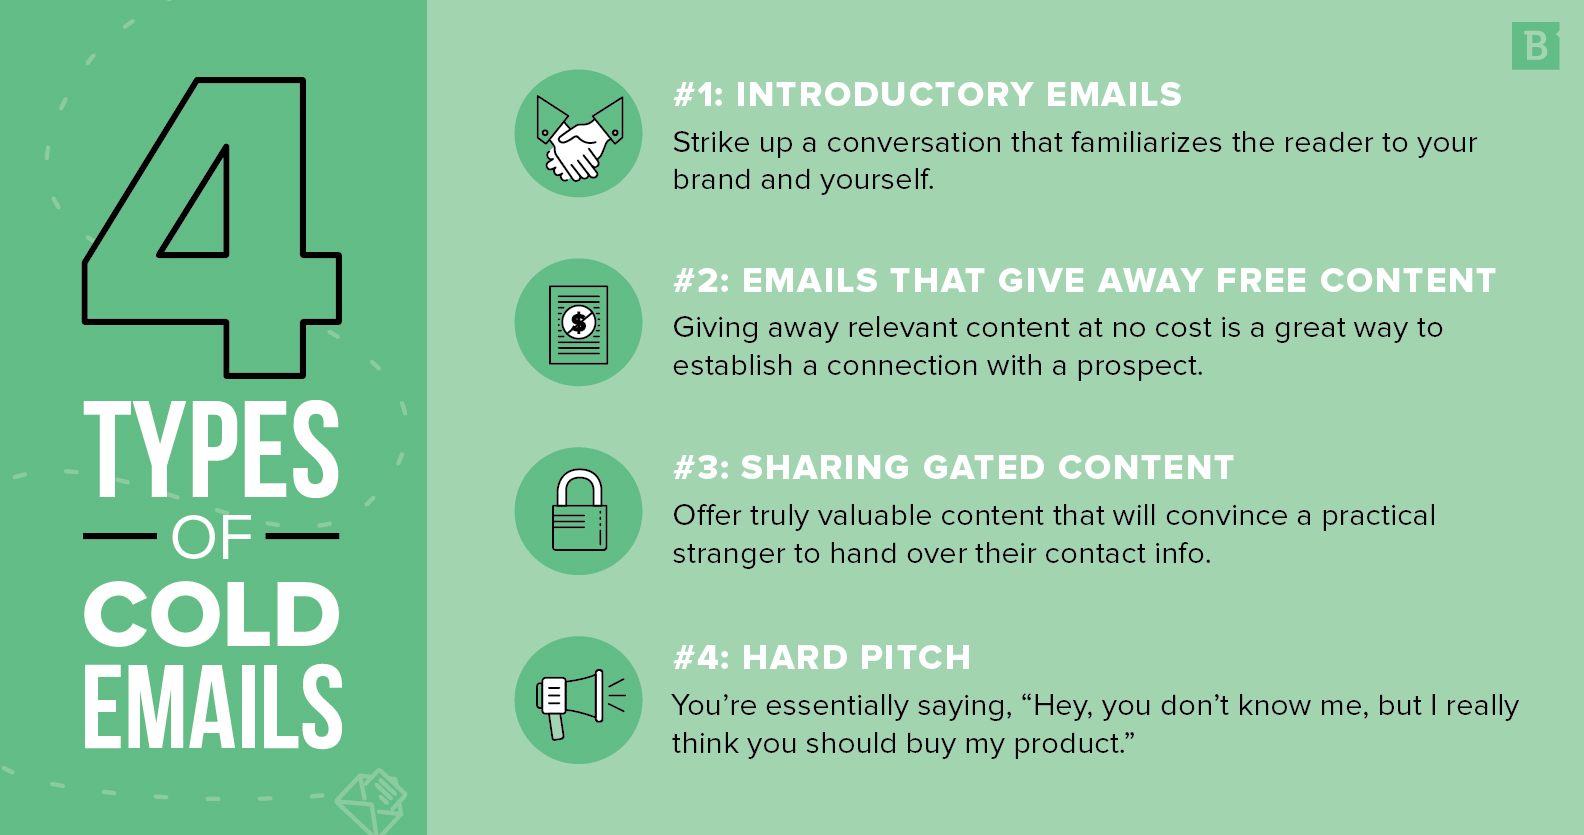 4 cold email template styles for every business | Brafton